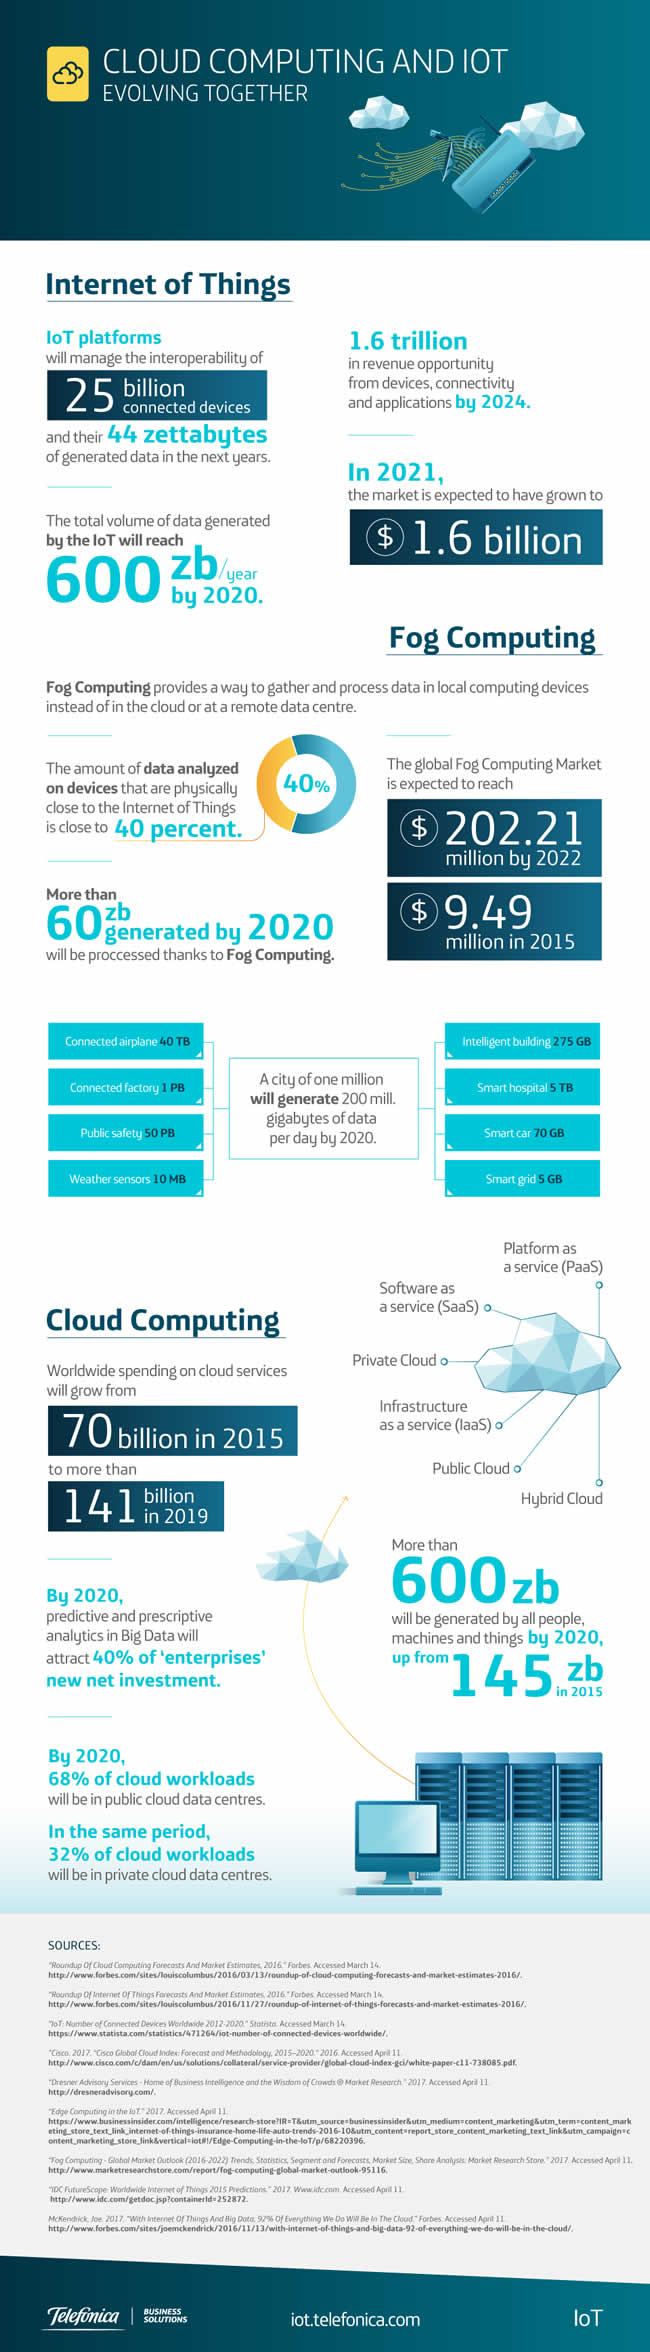 "IoT platforms in a world of cloud and fog computing - infographic by Telefónica - one of the evaluated vendors in the ""IDC MarketScape: Worldwide IoT Platforms (Device and Network Connectivity Providers) 2018 Vendor Assessment"" - infographic source and courtesy Telefónica IoT"